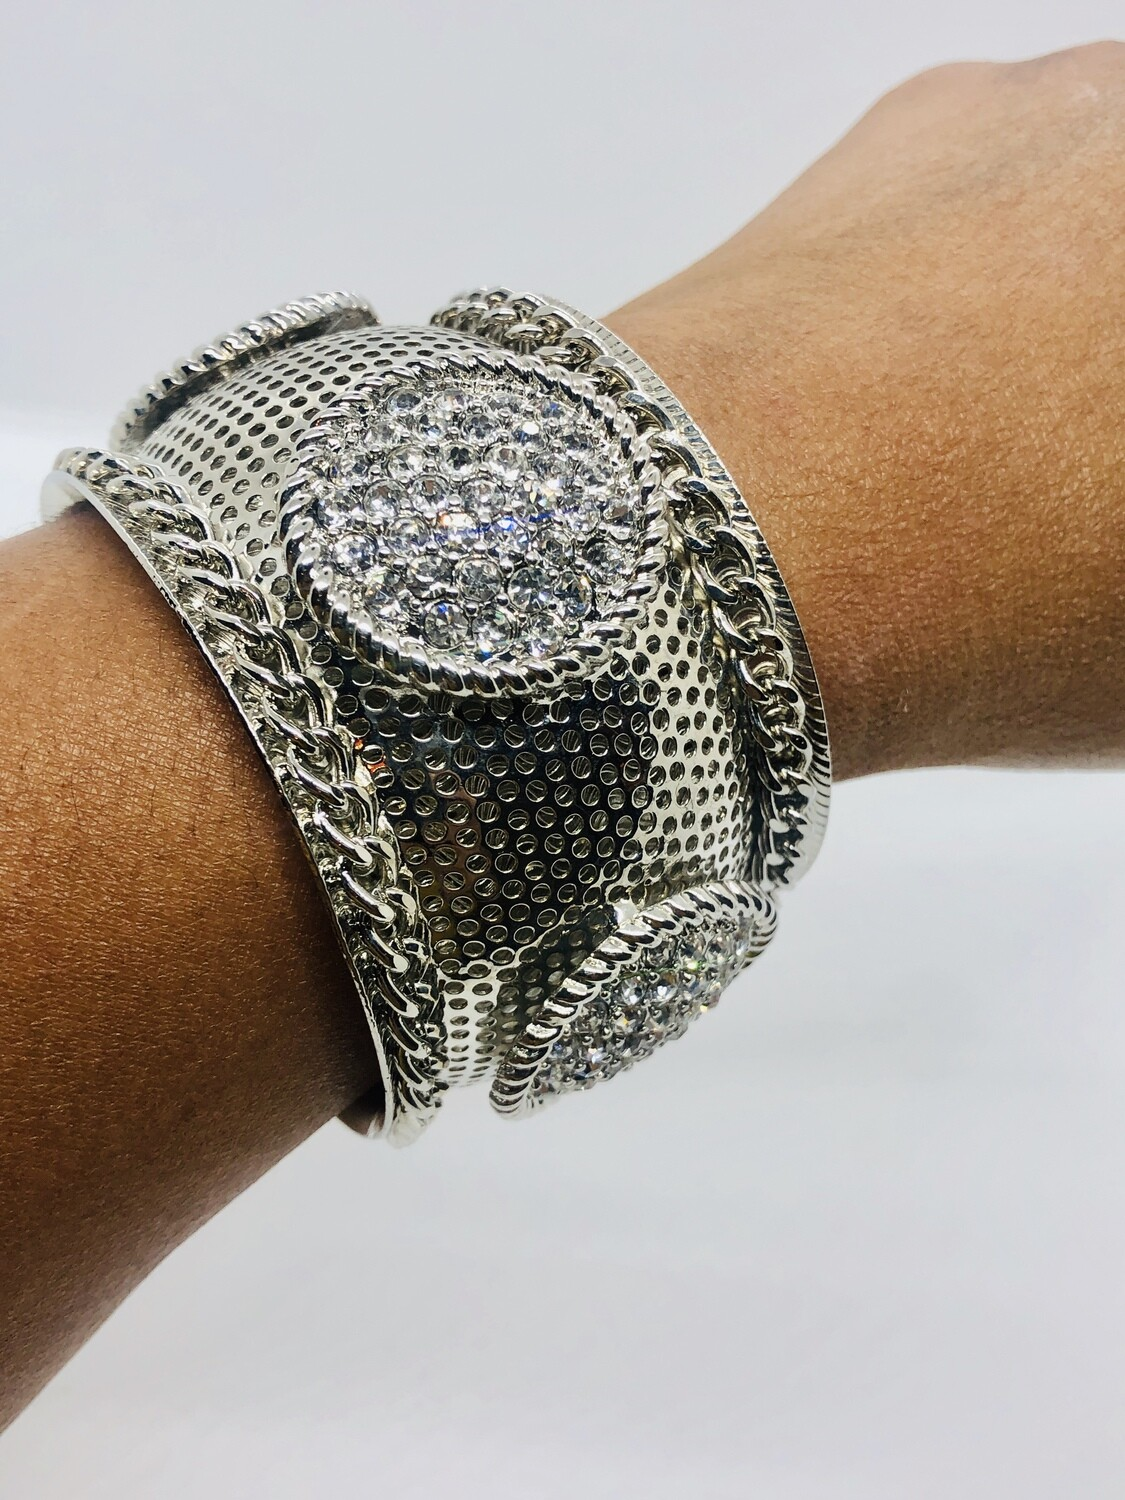 Large Abstract Perforated Silver & Rhinestone Cuff Bracelet